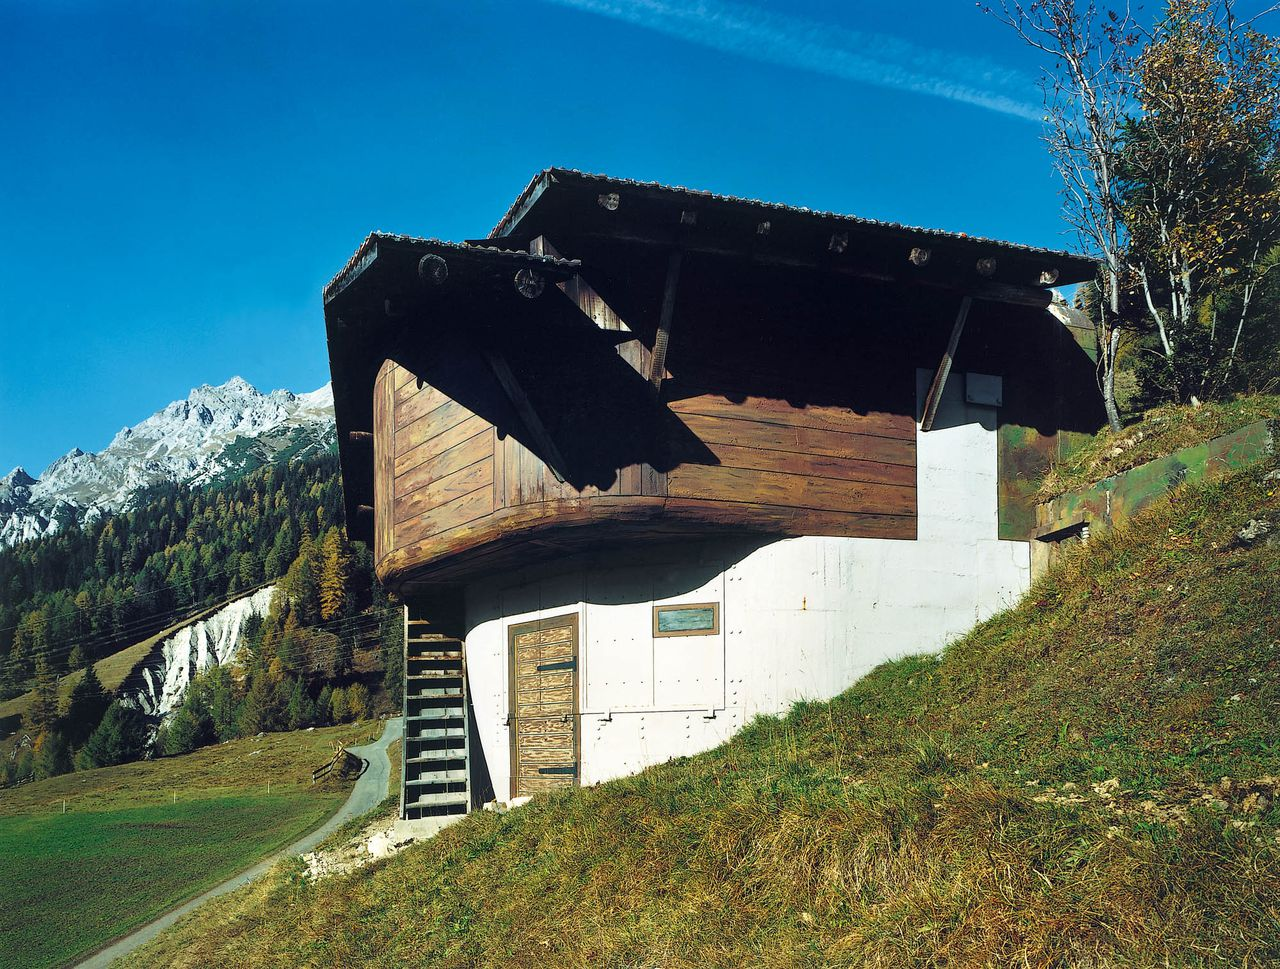 This undated handout picture taken by Christian Schwager and presented at the Bellpark Museum in Kriens, shows a Swiss military bunker camouflaged in faux-painting as a typical Alpine chalet somewhere in the Swiss countryside. 120 of these presented pictures expose the existence up until 2001 of over 1000 of these chalets and stables around the Swiss landscape. AFP PHOTO/CHRISTIAN SCHWAGER/BELLPARK MUSEUM/HO